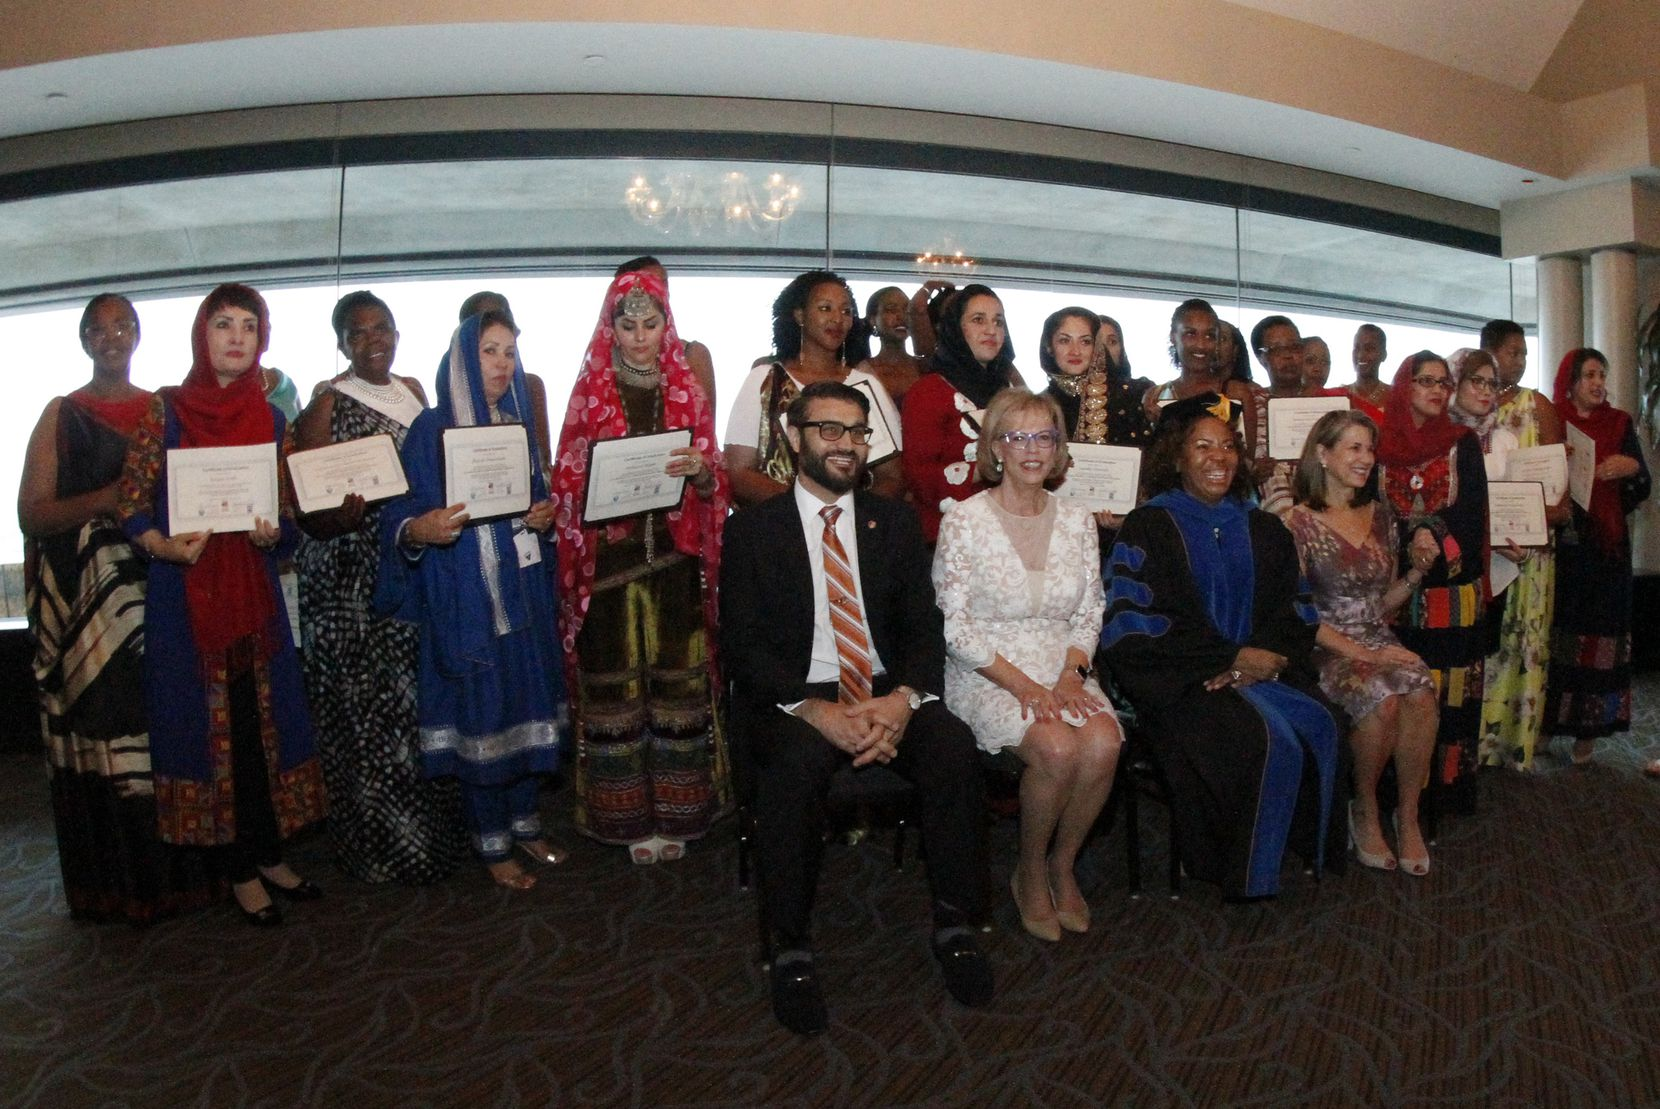 A group of women from Afghanistan and Rwanda gathered for a group photo after their graduation celebration.